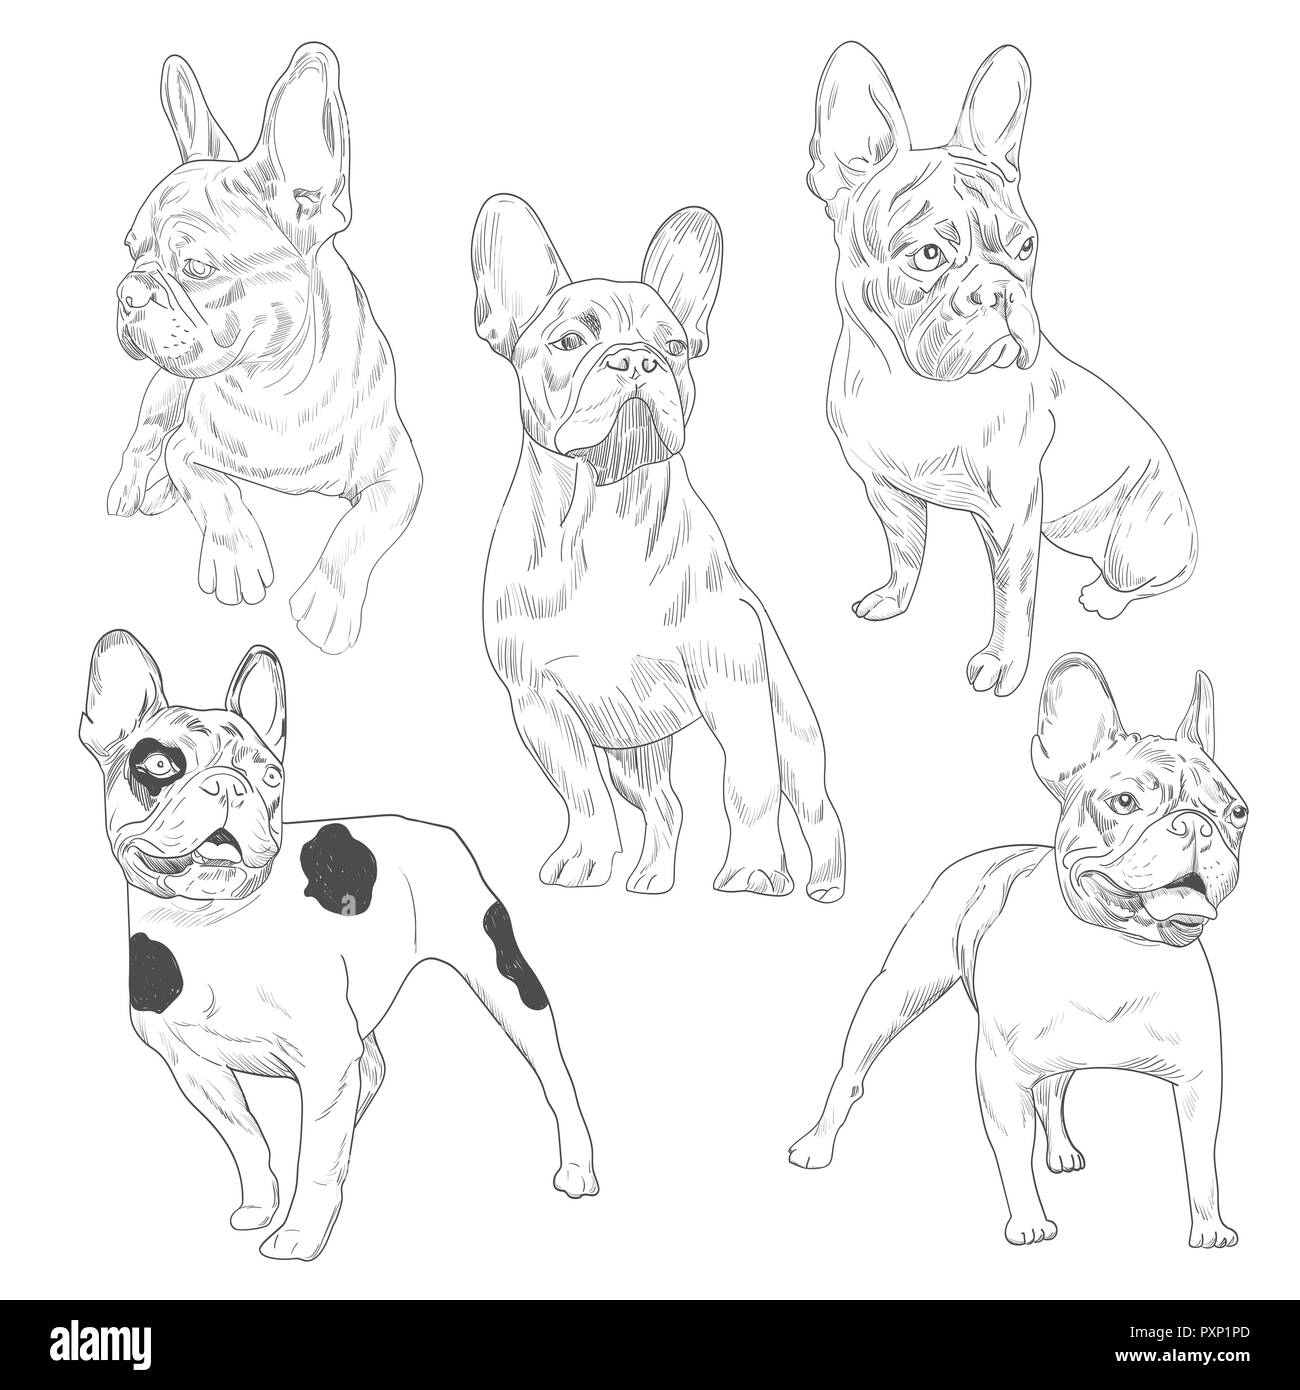 Purebred dog in different poses hand drawn sketches. French bulldog set isolated on white background. - Stock Image